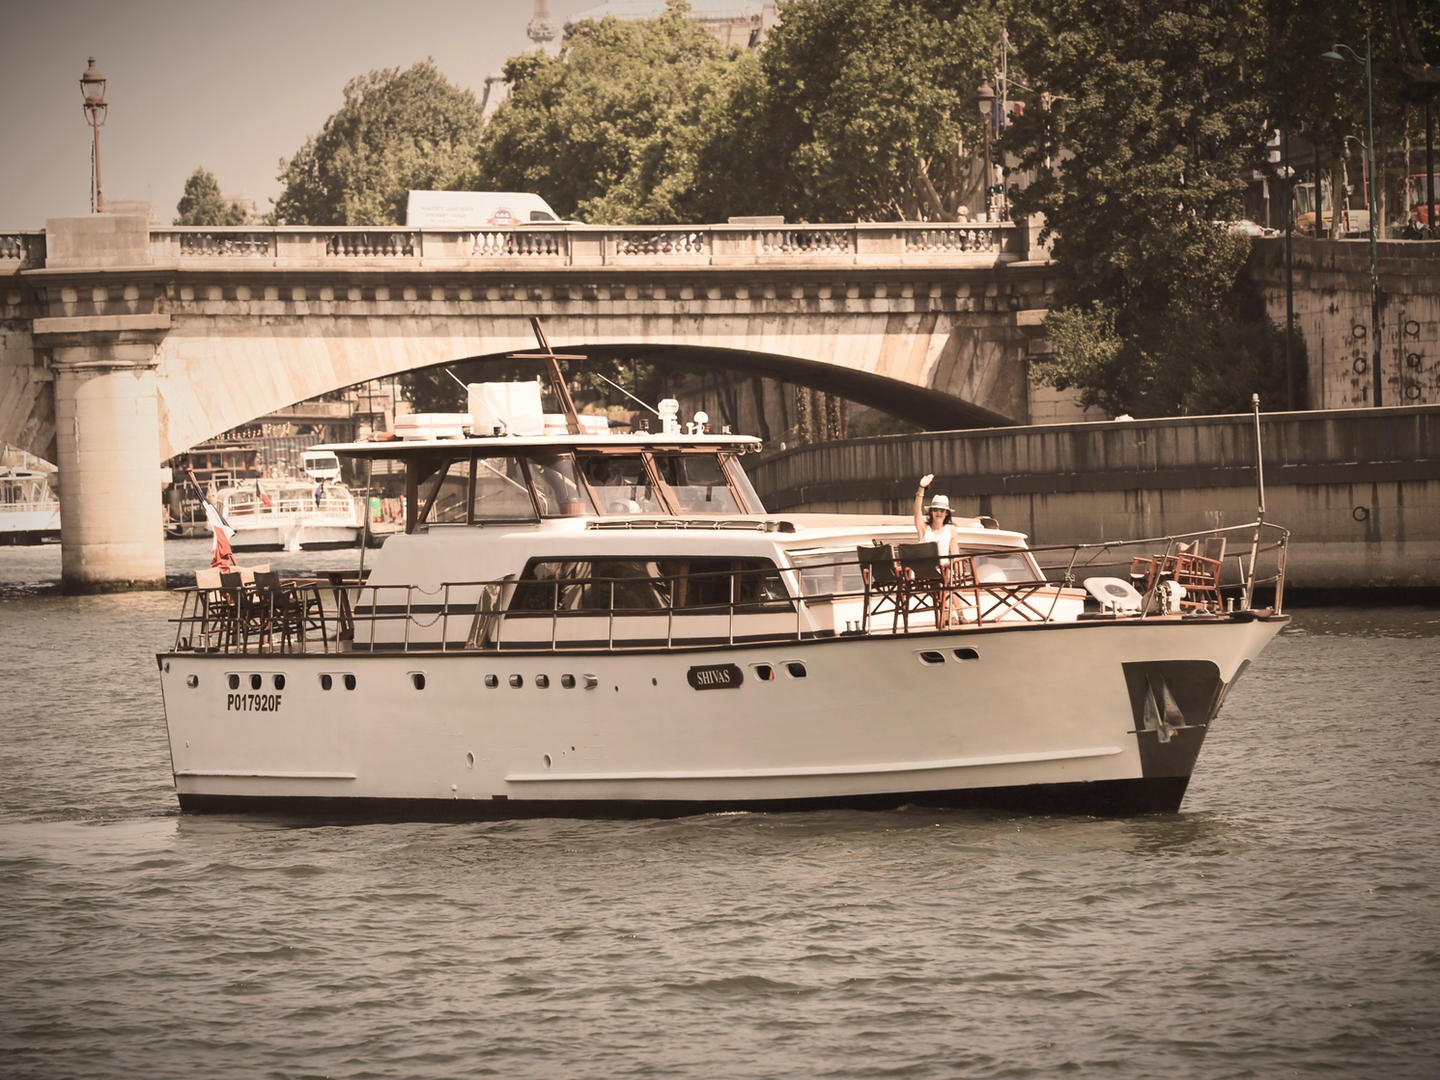 Super Riviera motor yacht at Concorde Paris